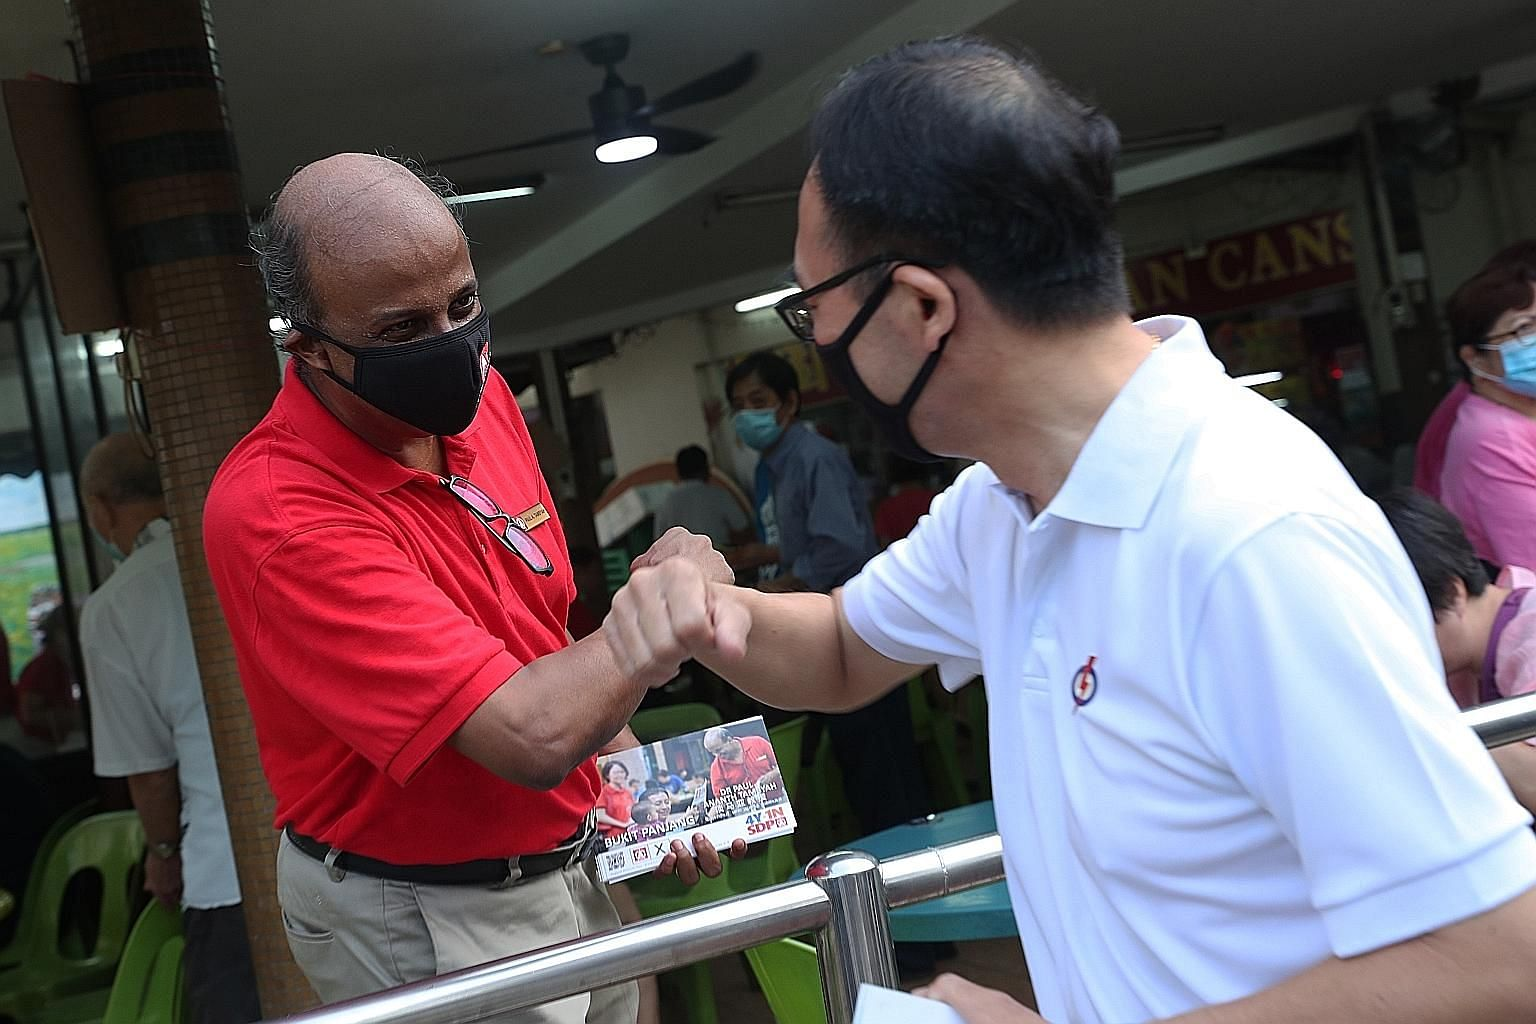 Singapore Democratic Party chairman Paul Tambyah and his rival Bukit Panjang SMC candidate Liang Eng Hwa of the People's Action Party greeting each other while meeting residents in Bangkit Road yesterday.